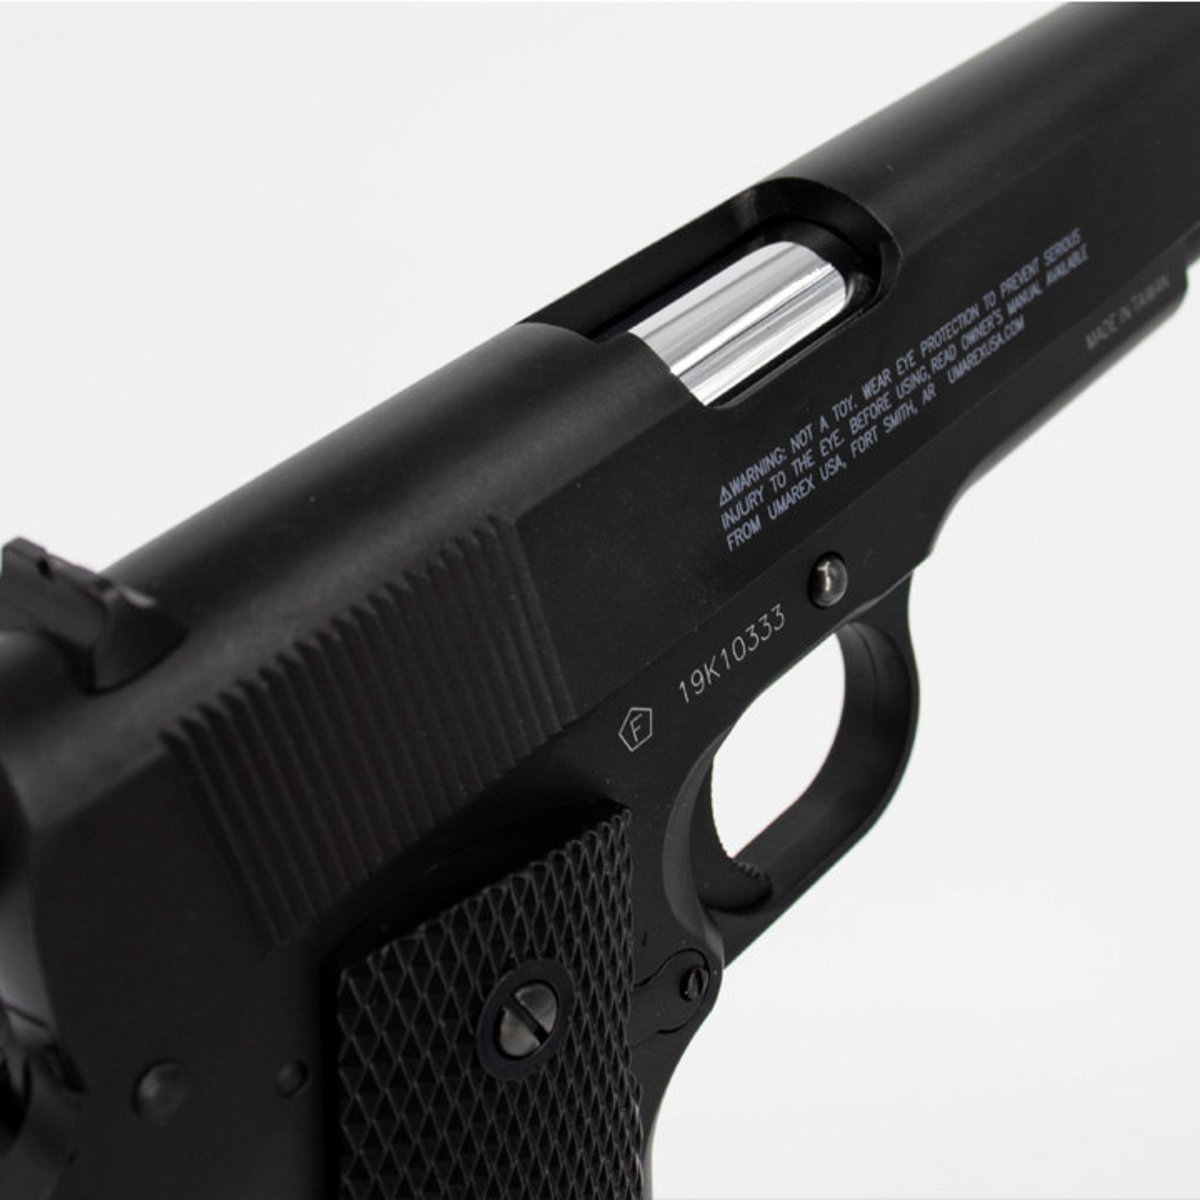 View larger image of Elite Force 1911 A1 Gen3 CO2 Blowback Airsoft Pistol